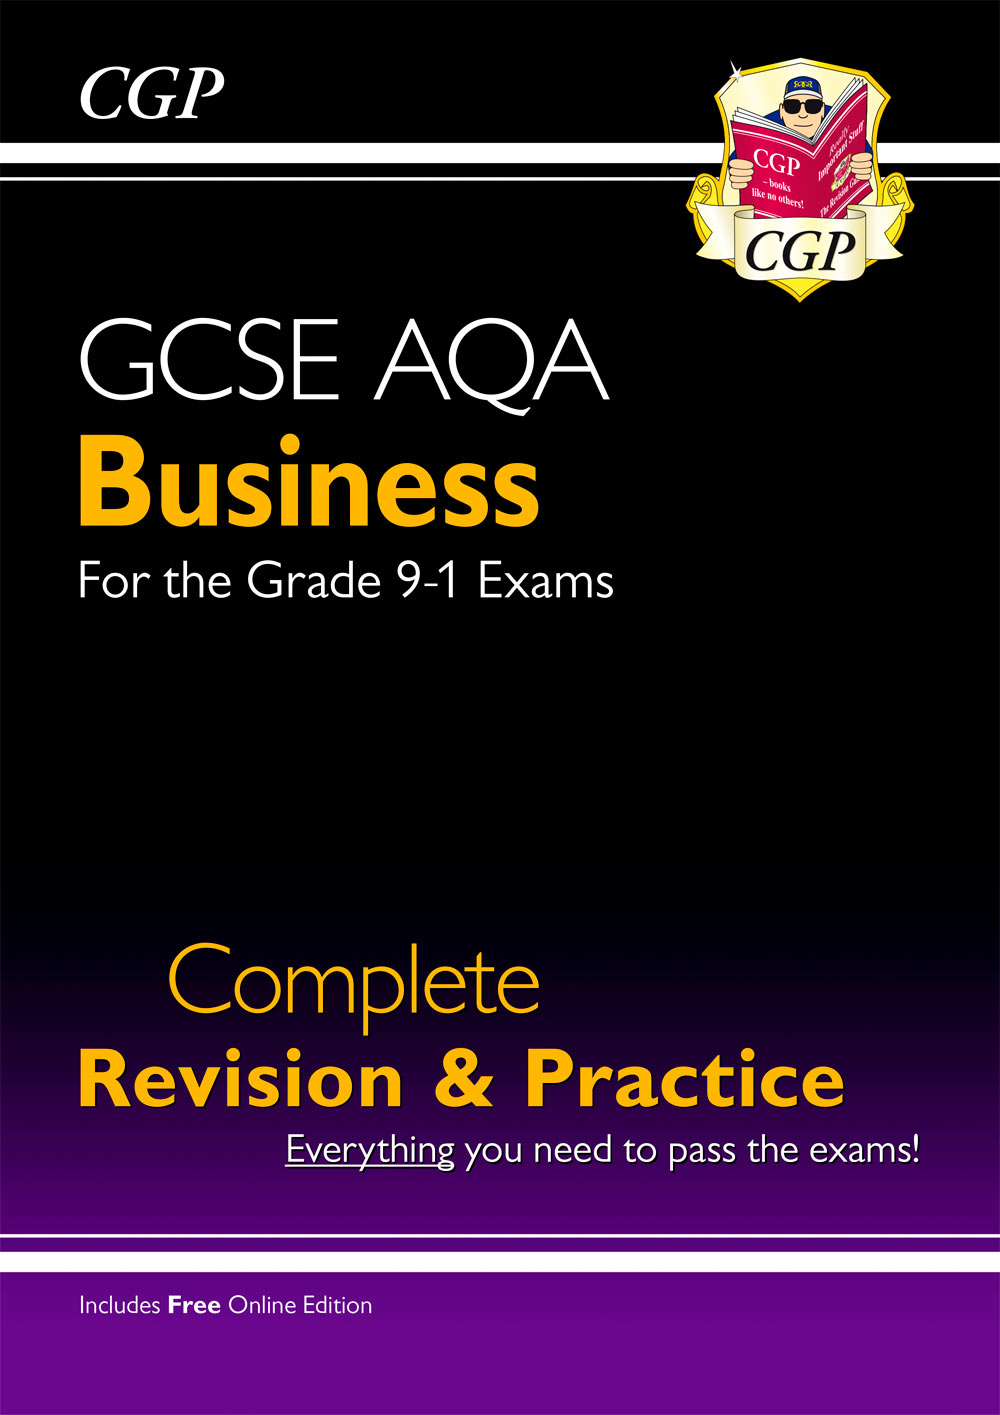 BUAS41 - New GCSE Business AQA Complete Revision and Practice - Grade 9-1 Course (with Online Editio